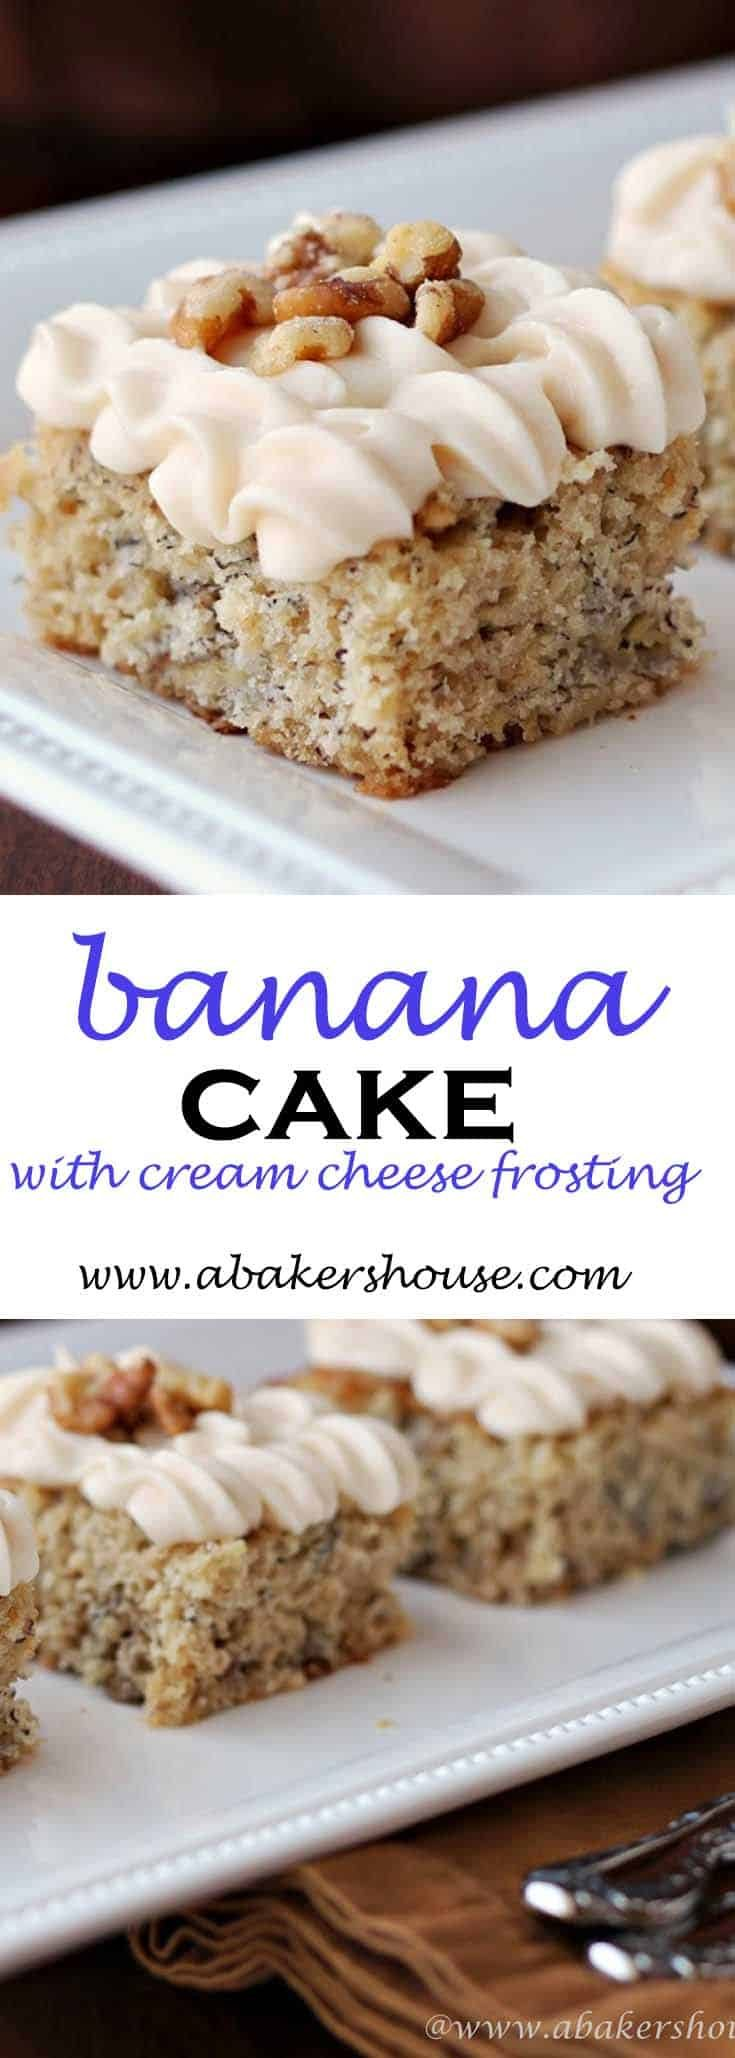 Banana Cake-- a perfect dessert made with roasted bananas and topped with cream cheese frosting. Great for dessert, snack cake, tea time #banana #bananas #bananacake #abakershouse #creamcheesefrosting